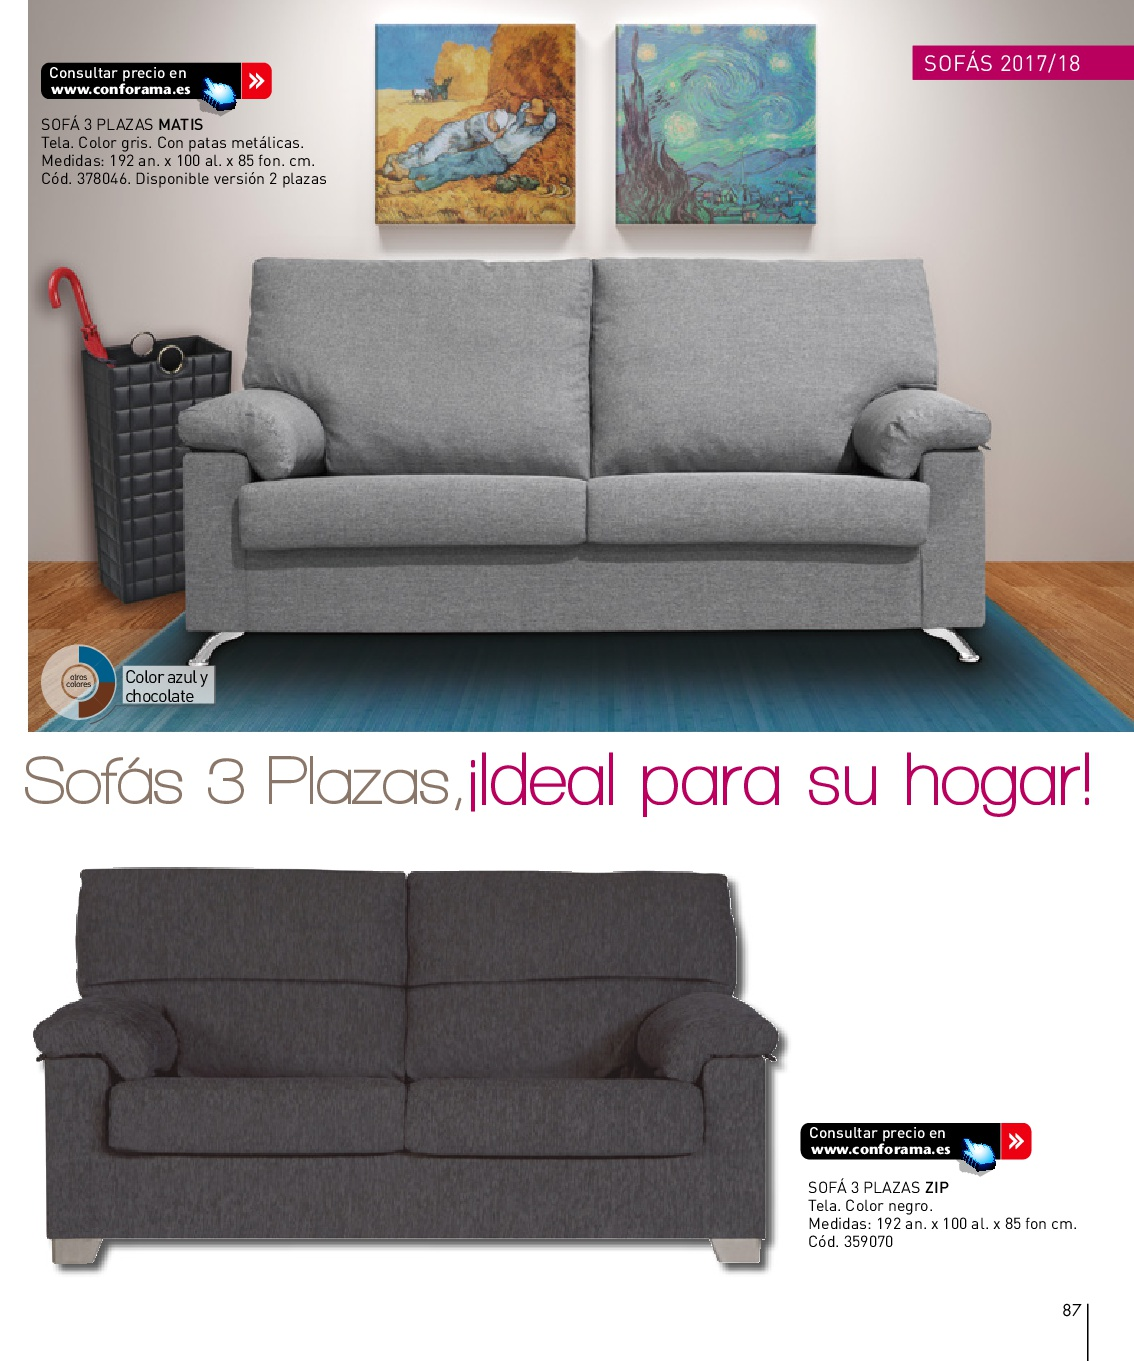 Sofas dos plazas conforama latest cool stunning sofa for Sofa cama una plaza conforama